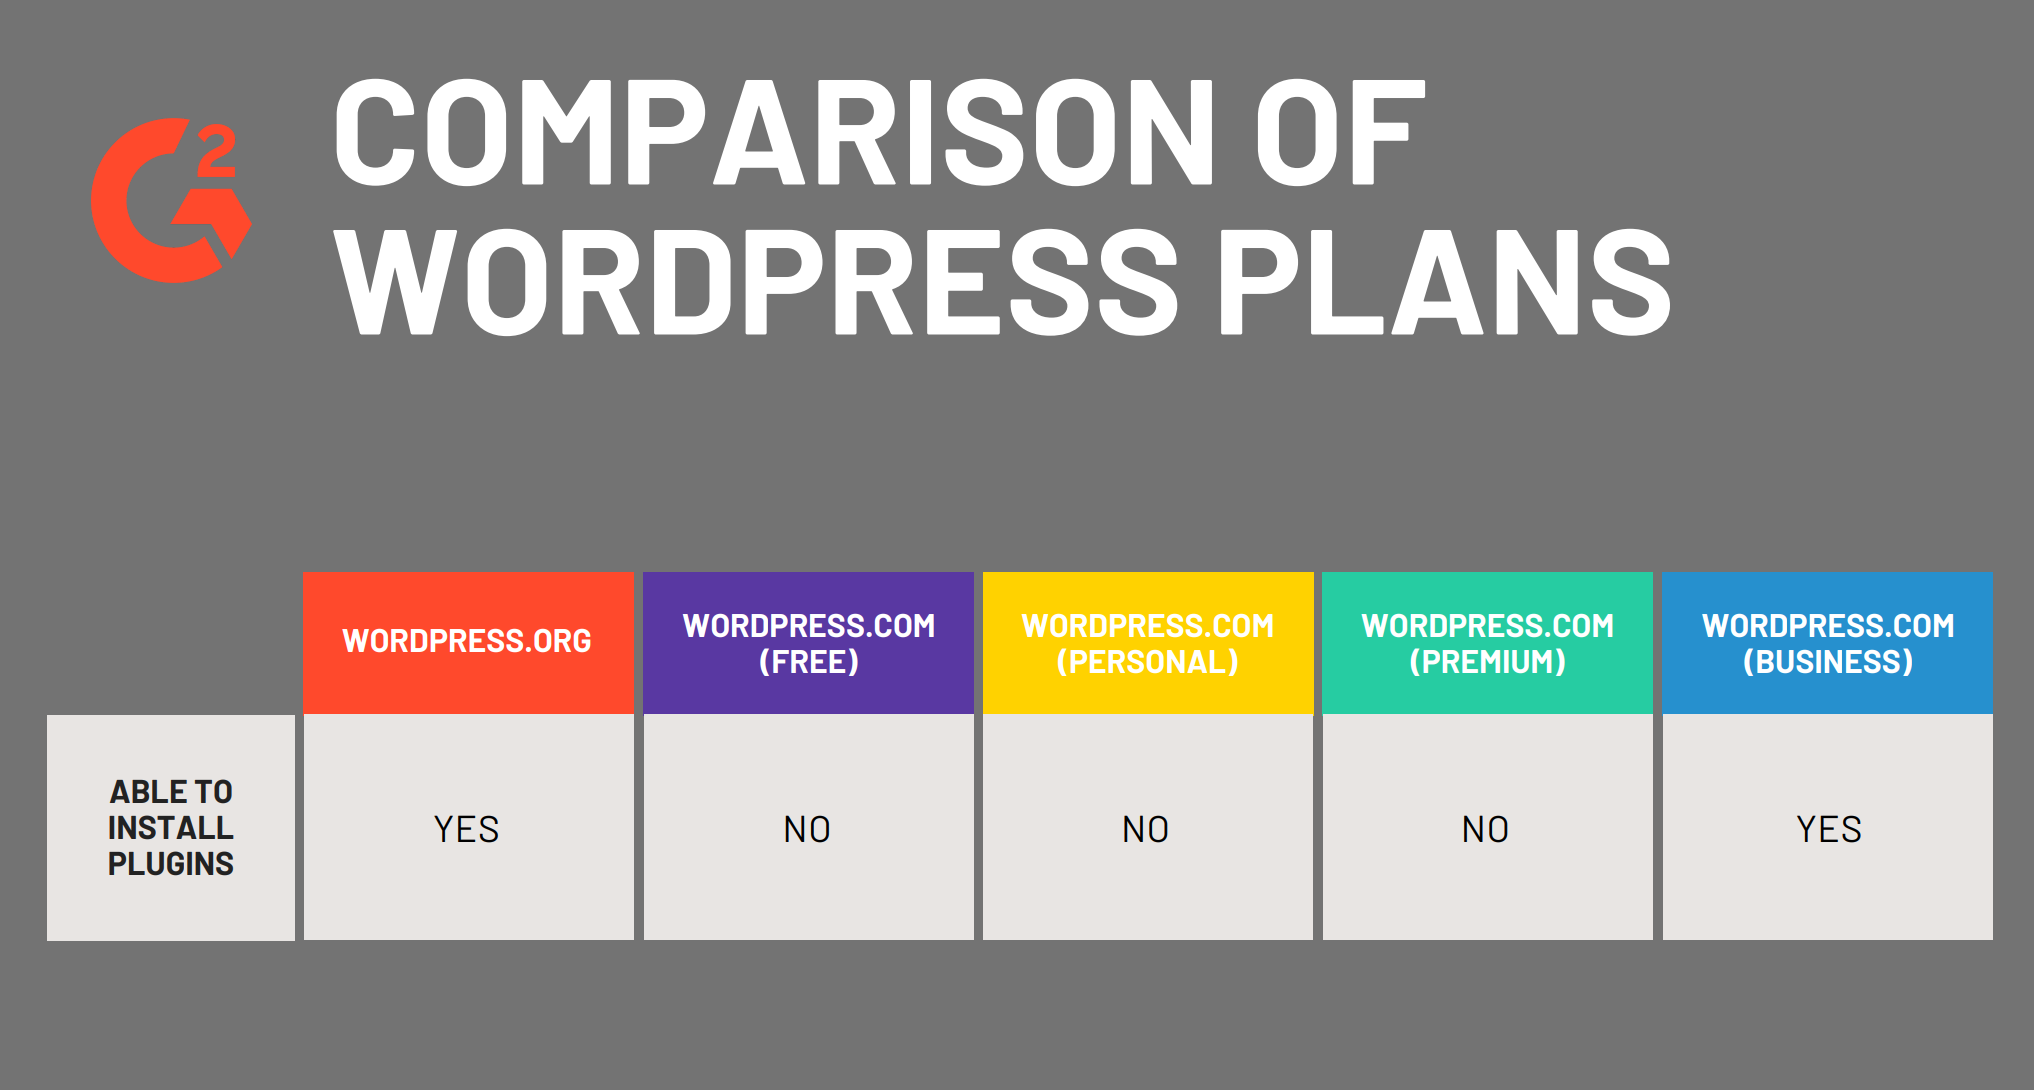 Plugins available for different WordPress plans